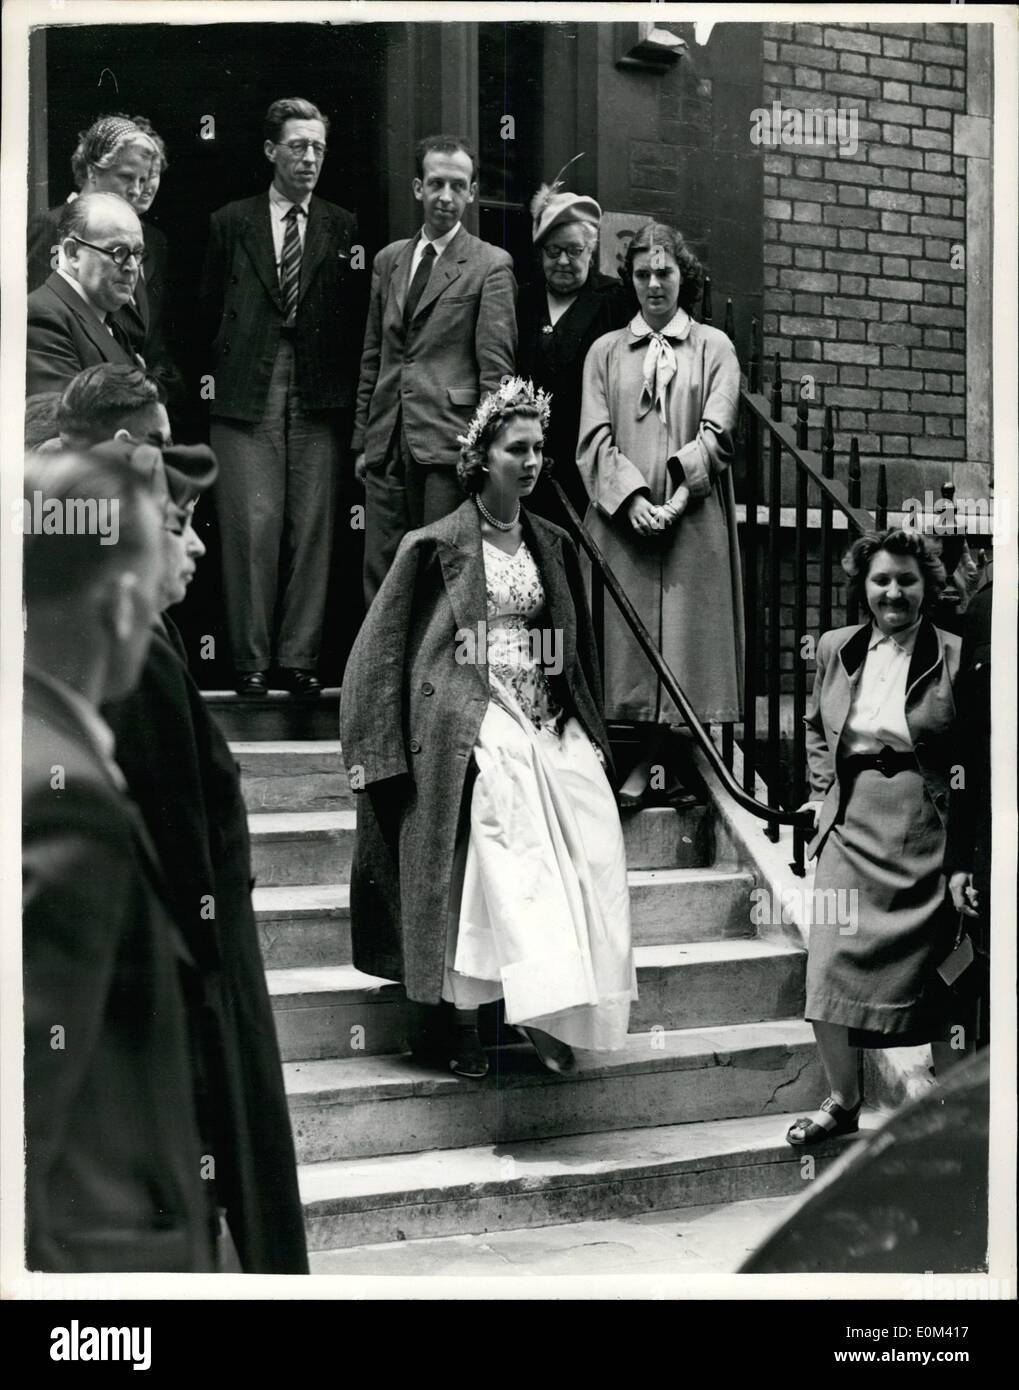 May 05, 1953 - Full Coronation rehearsal... Lady Jane Tempest-Stewart uses a coat to keep warm: Photo shows Lady Jane Vane-Tempest-Stewart one of the Maids of Honour - wears an overcoat over her shoulders - when in Dean's Yard, Westminster this morning - after taking part in the full rehearsal for the Coronation. - Stock Image